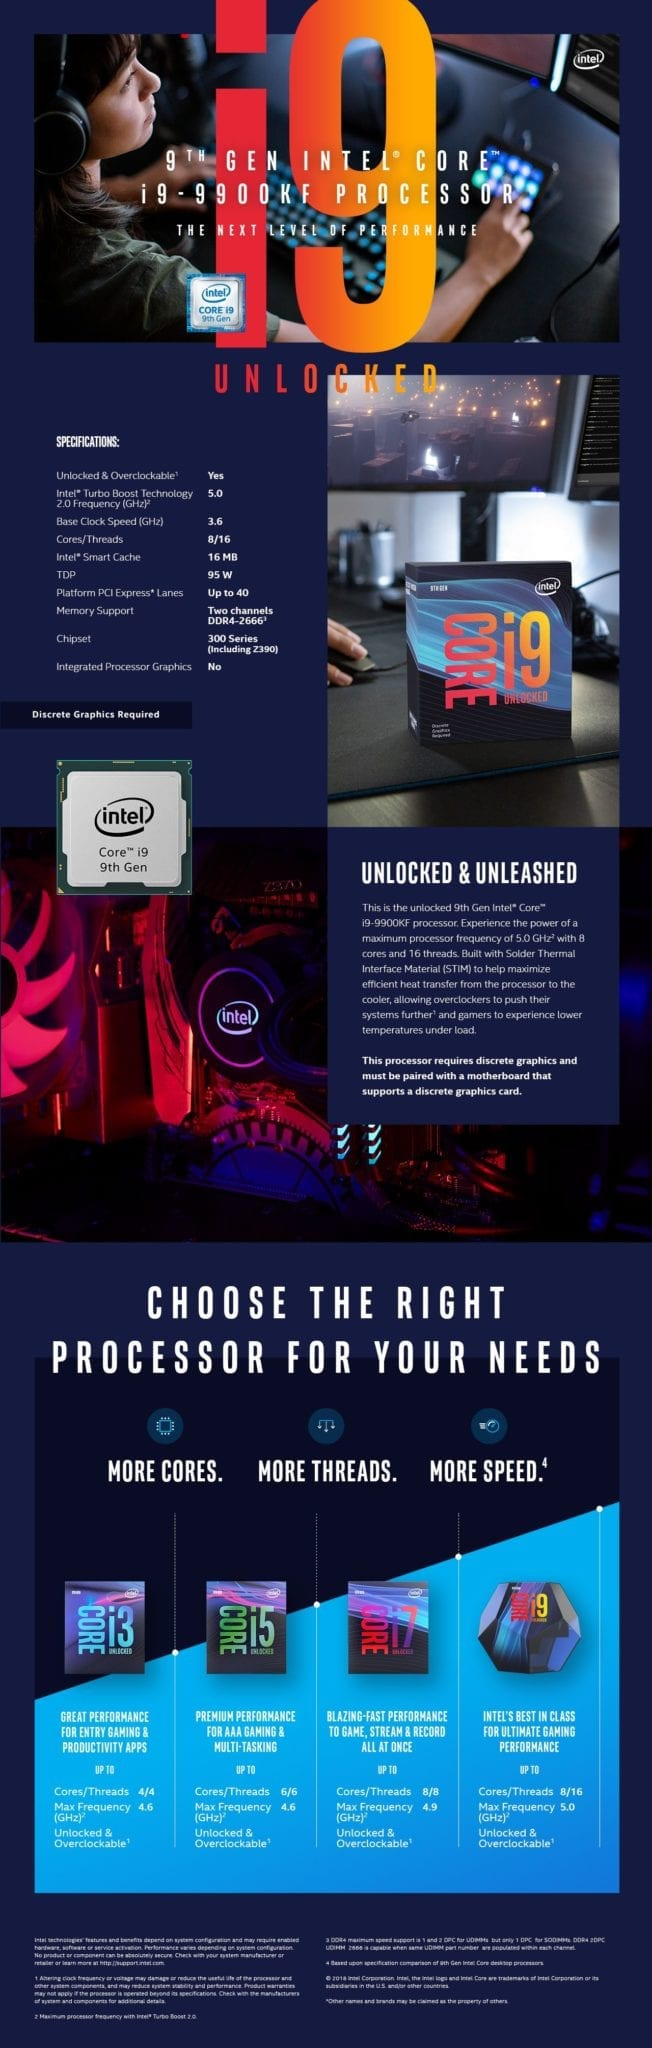 The Intel Core i9-9900KF on Sale for a Discounted price of $420 on Newegg